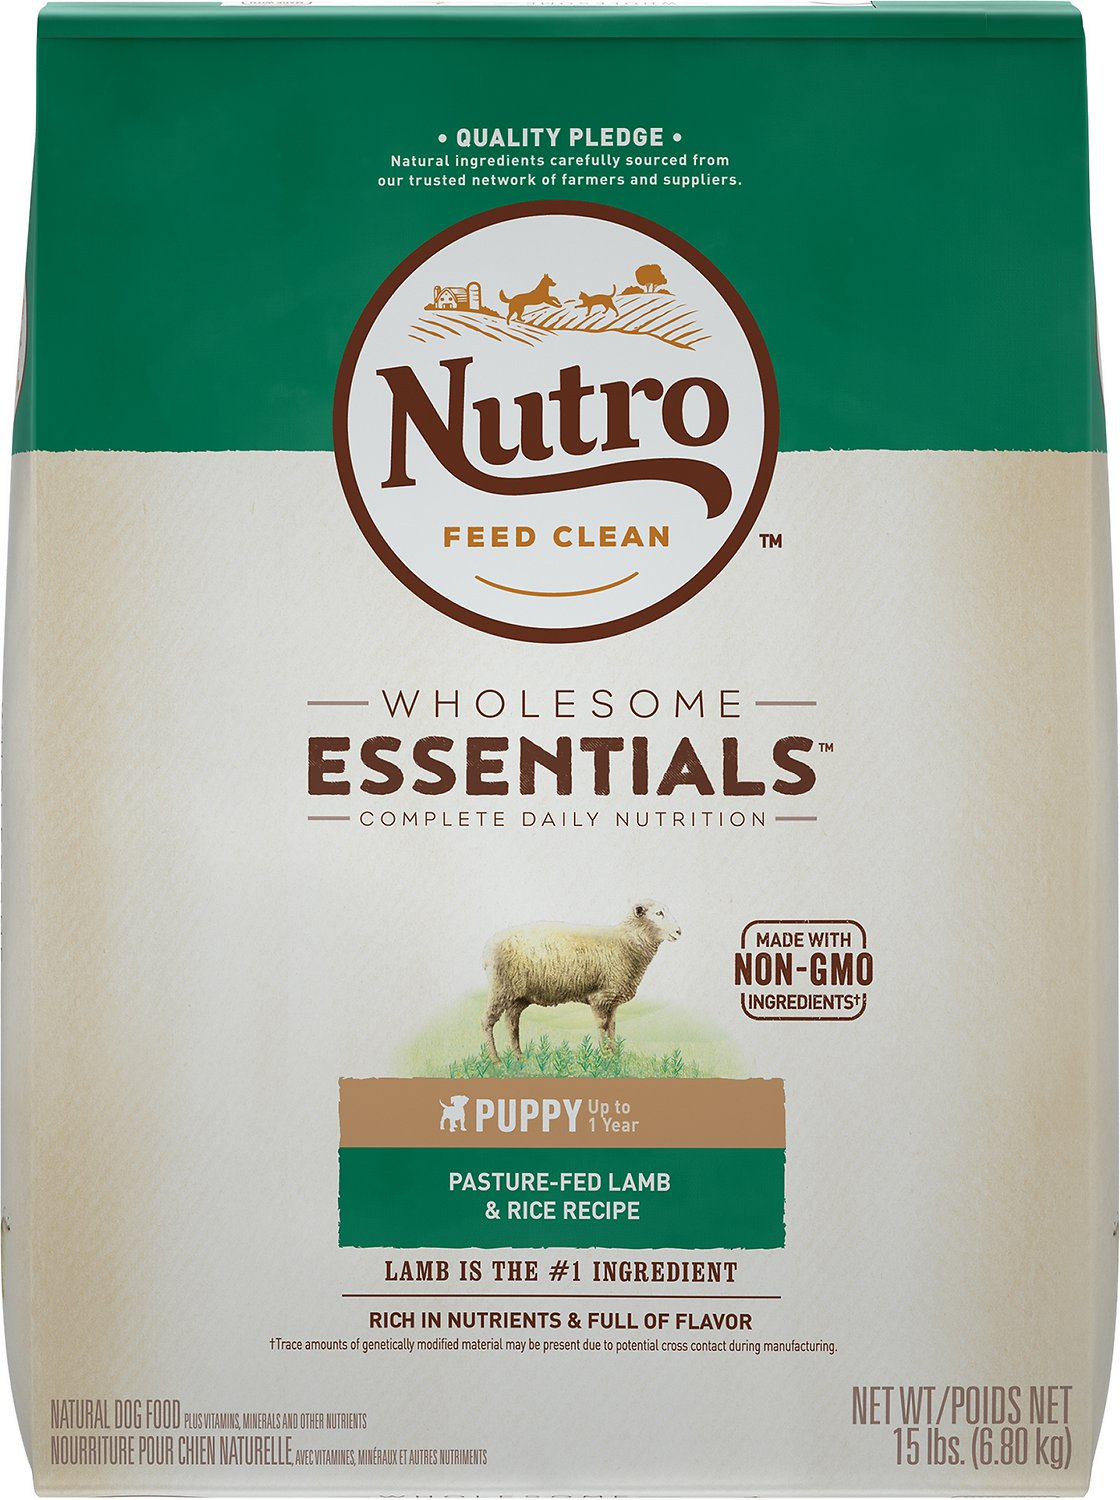 Nutro Wholesome Essentials Puppy Pasture Fed Lamb & Rice Recipe Dry Dog Food Image